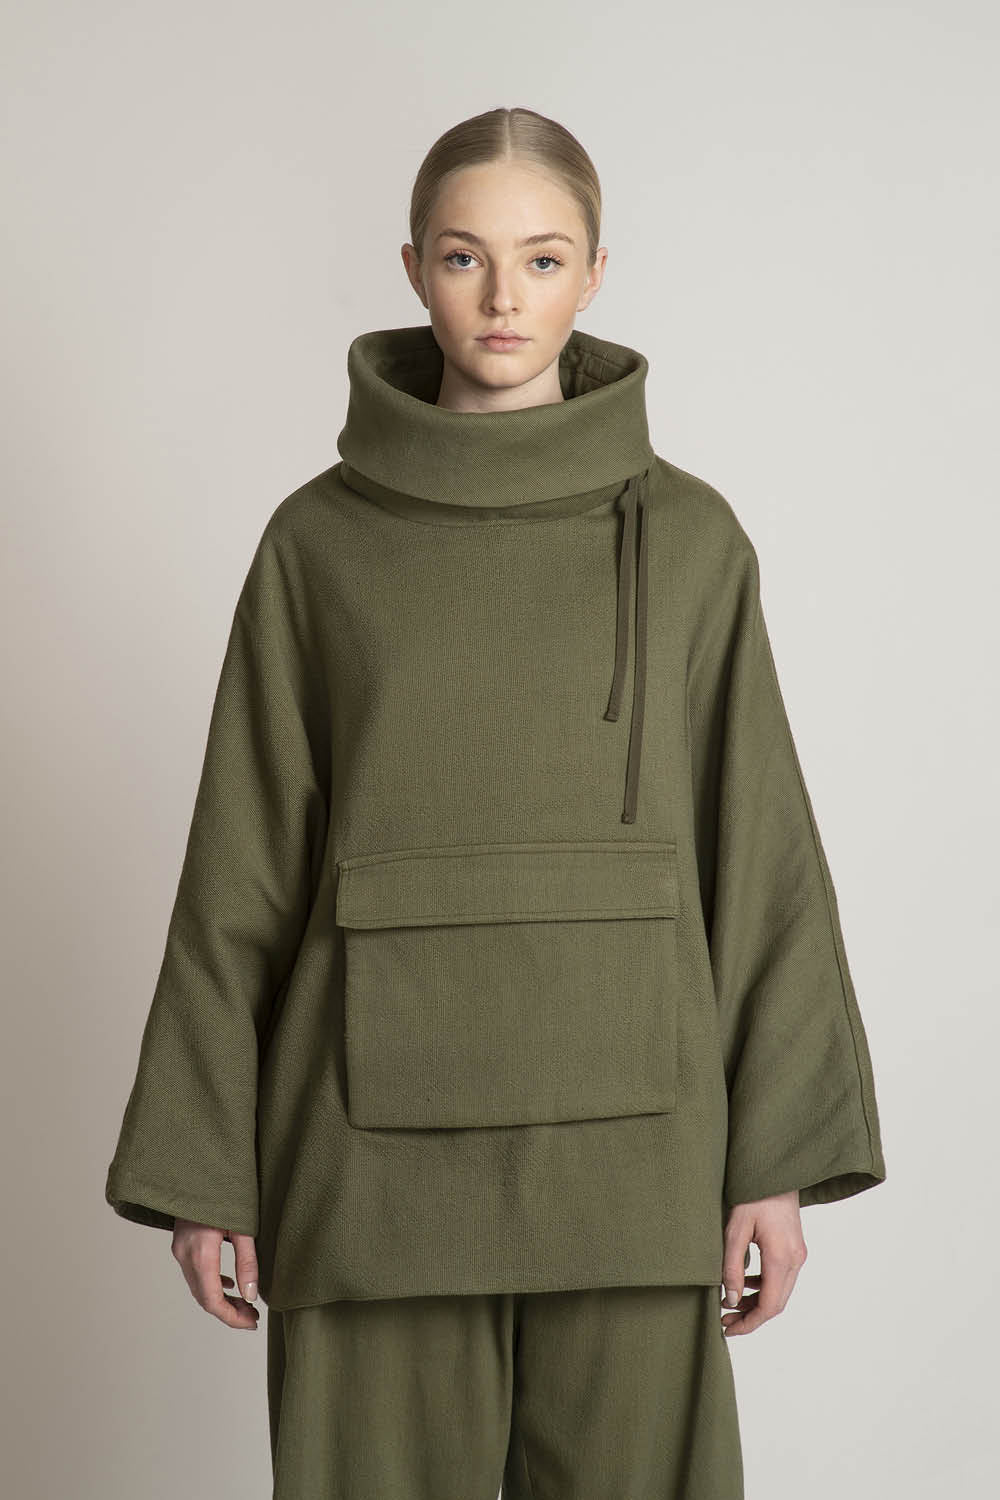 THE SAVIOR TURTLE NECK IN ARMY SOLID